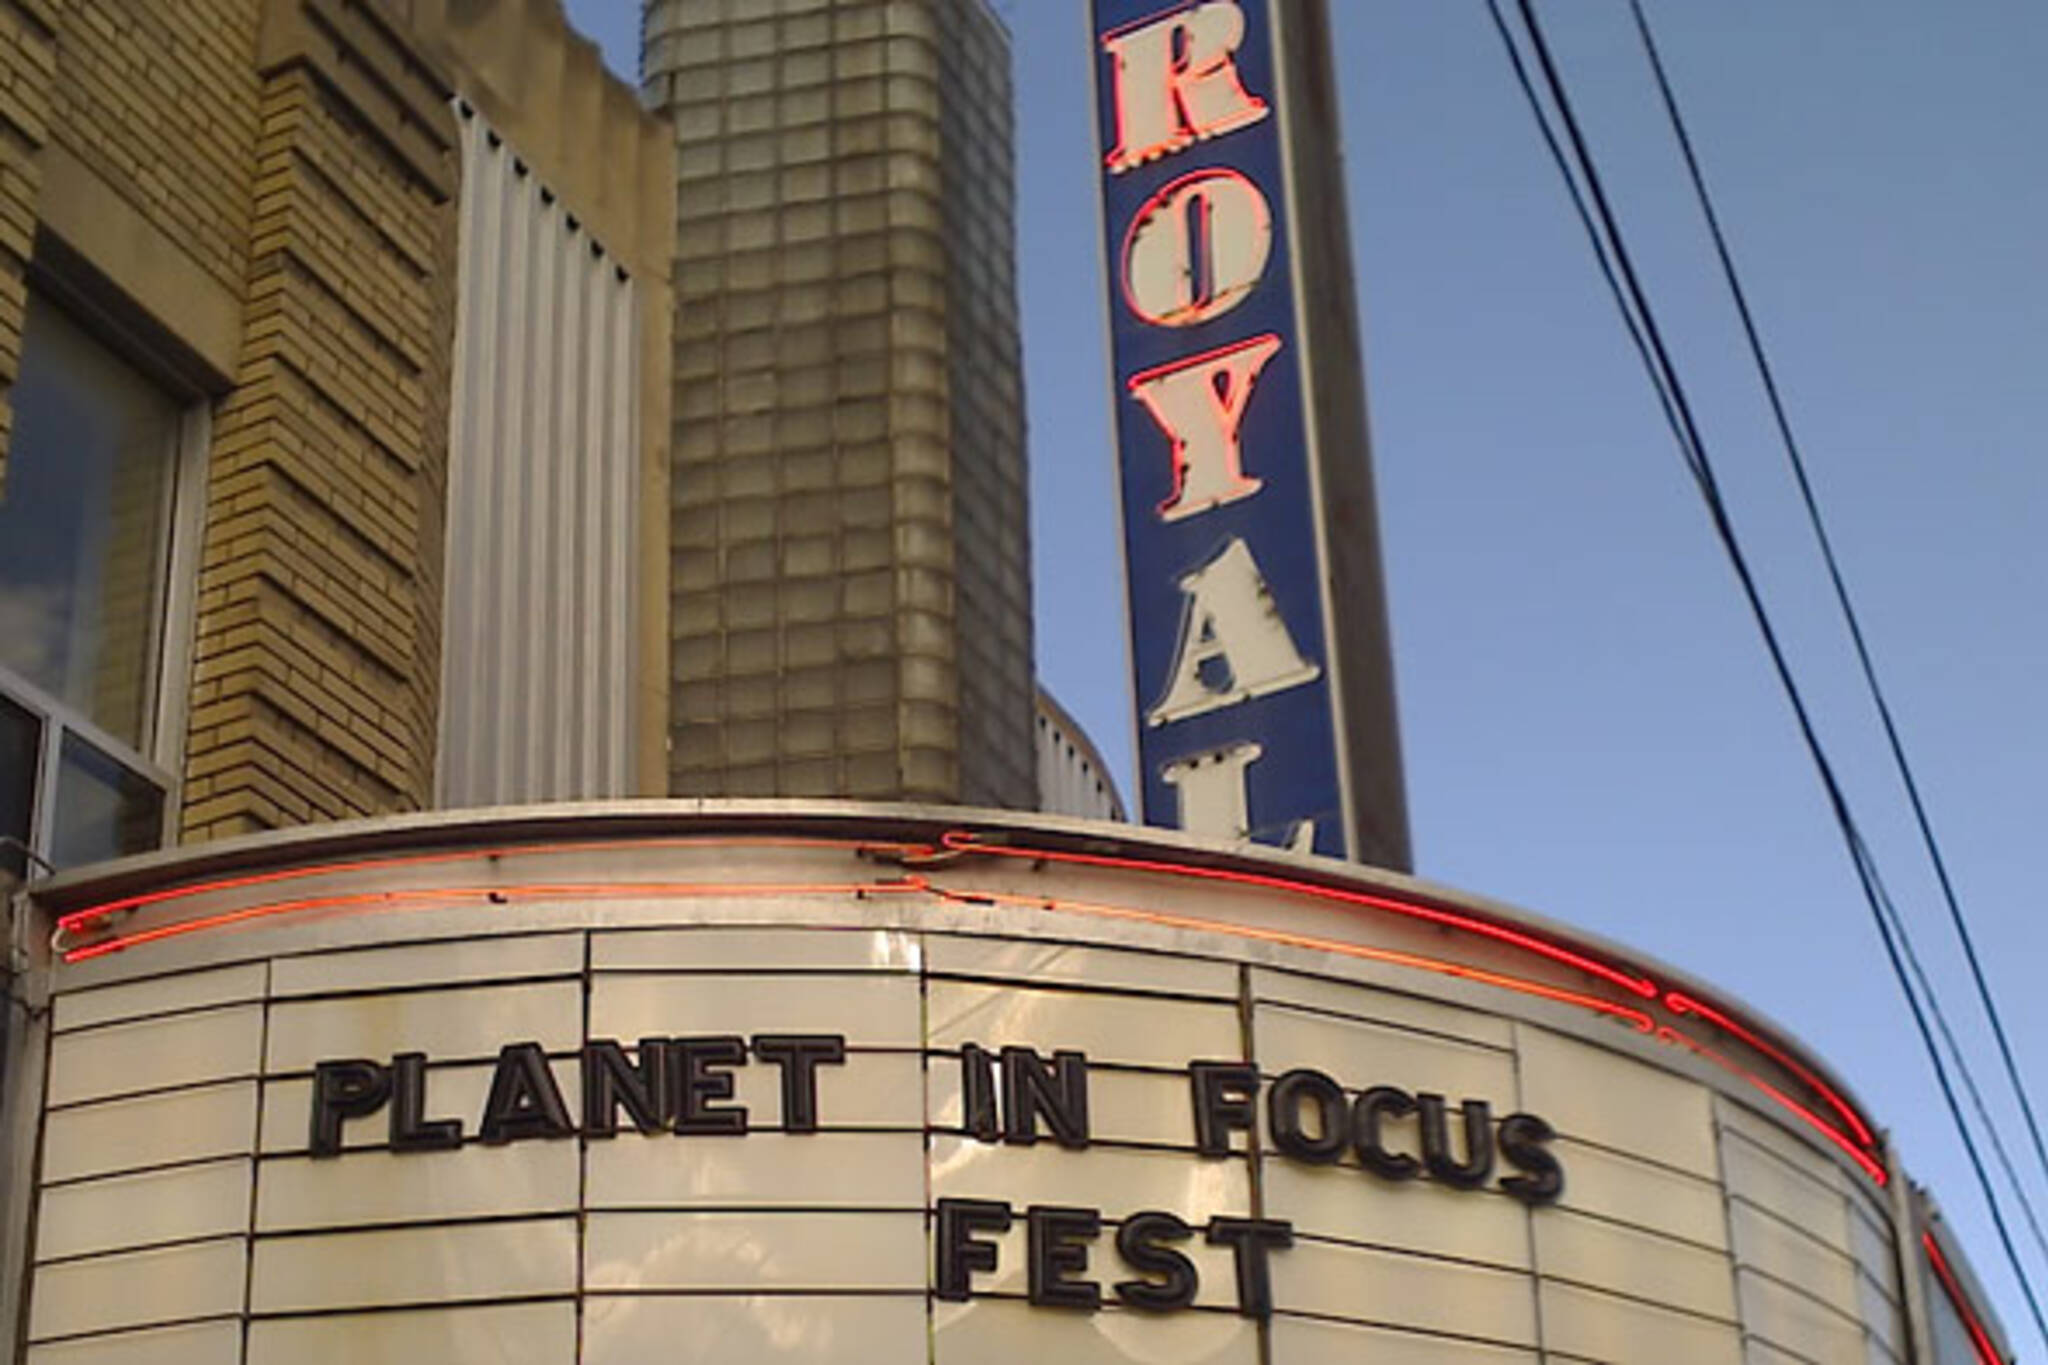 planet in focus 2007 awards